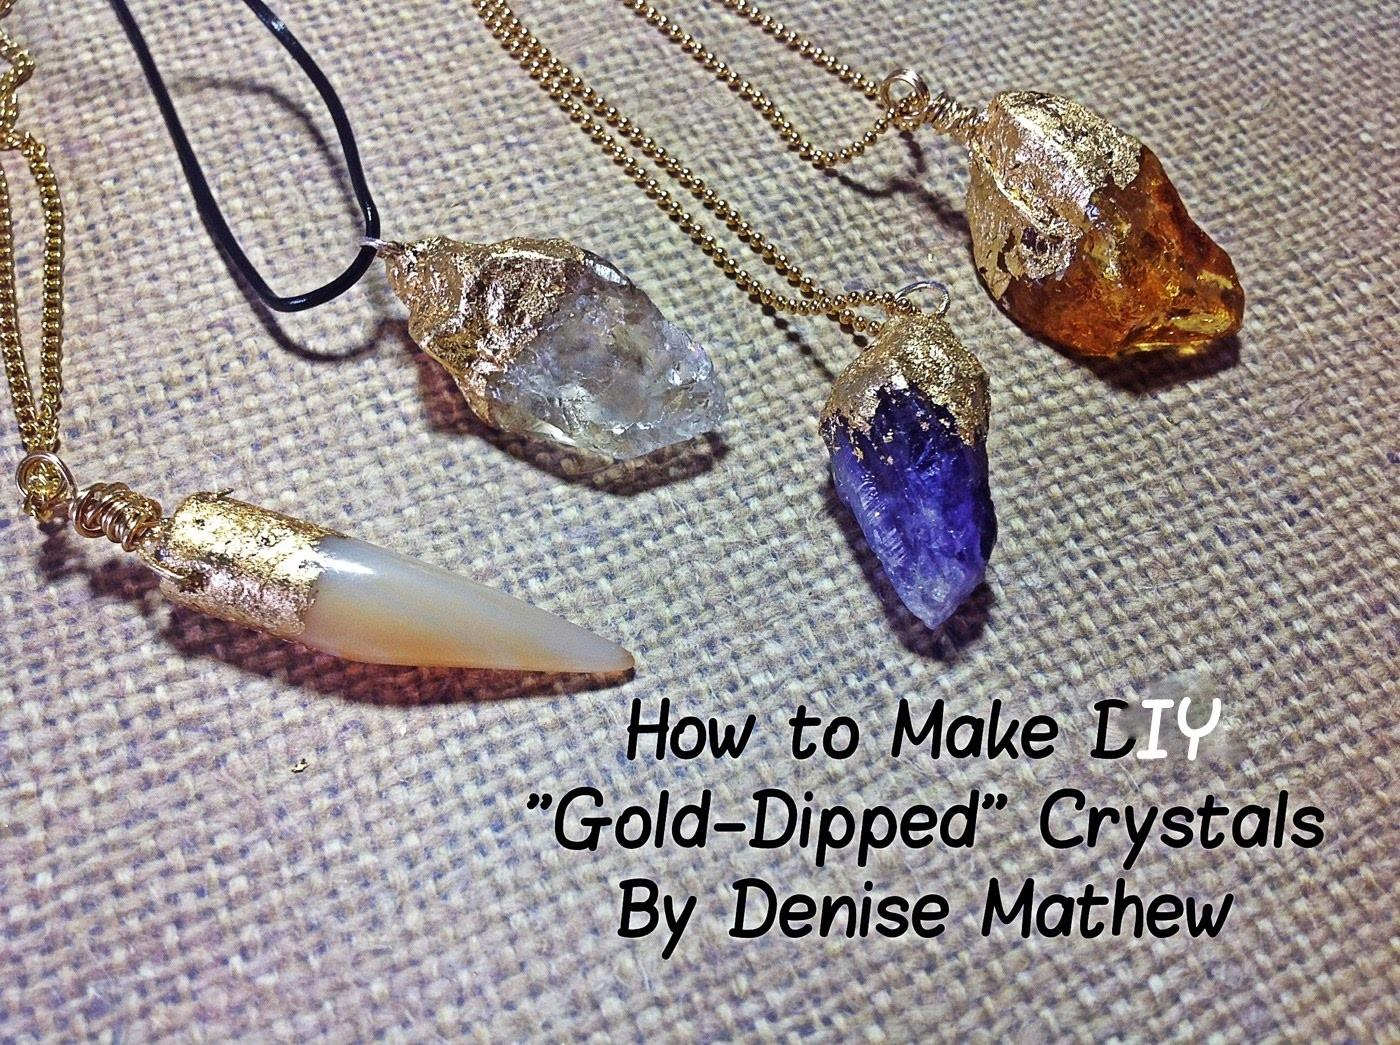 Make Diy Gold Dipped Crystal Pendants Denise